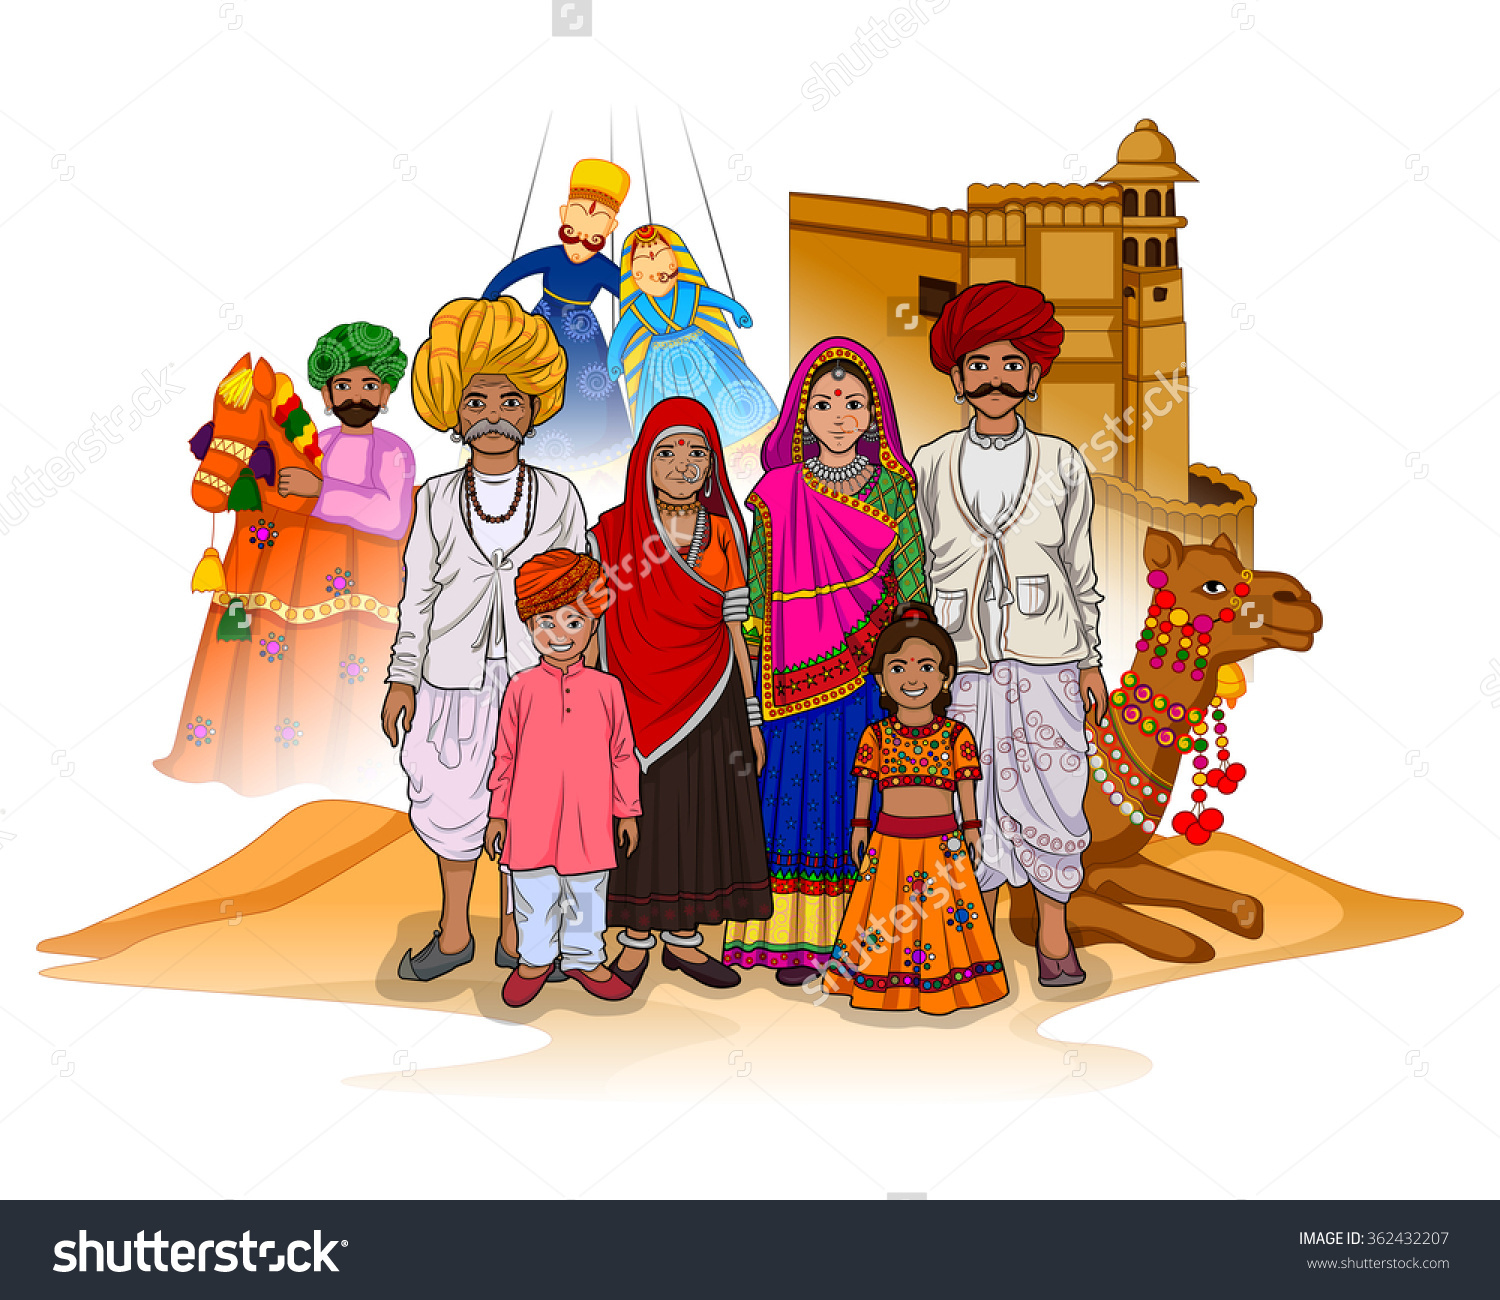 Traditional dress of rajasthan clipart graphic black and white library Traditional dress of rajasthan clipart - ClipartFest graphic black and white library